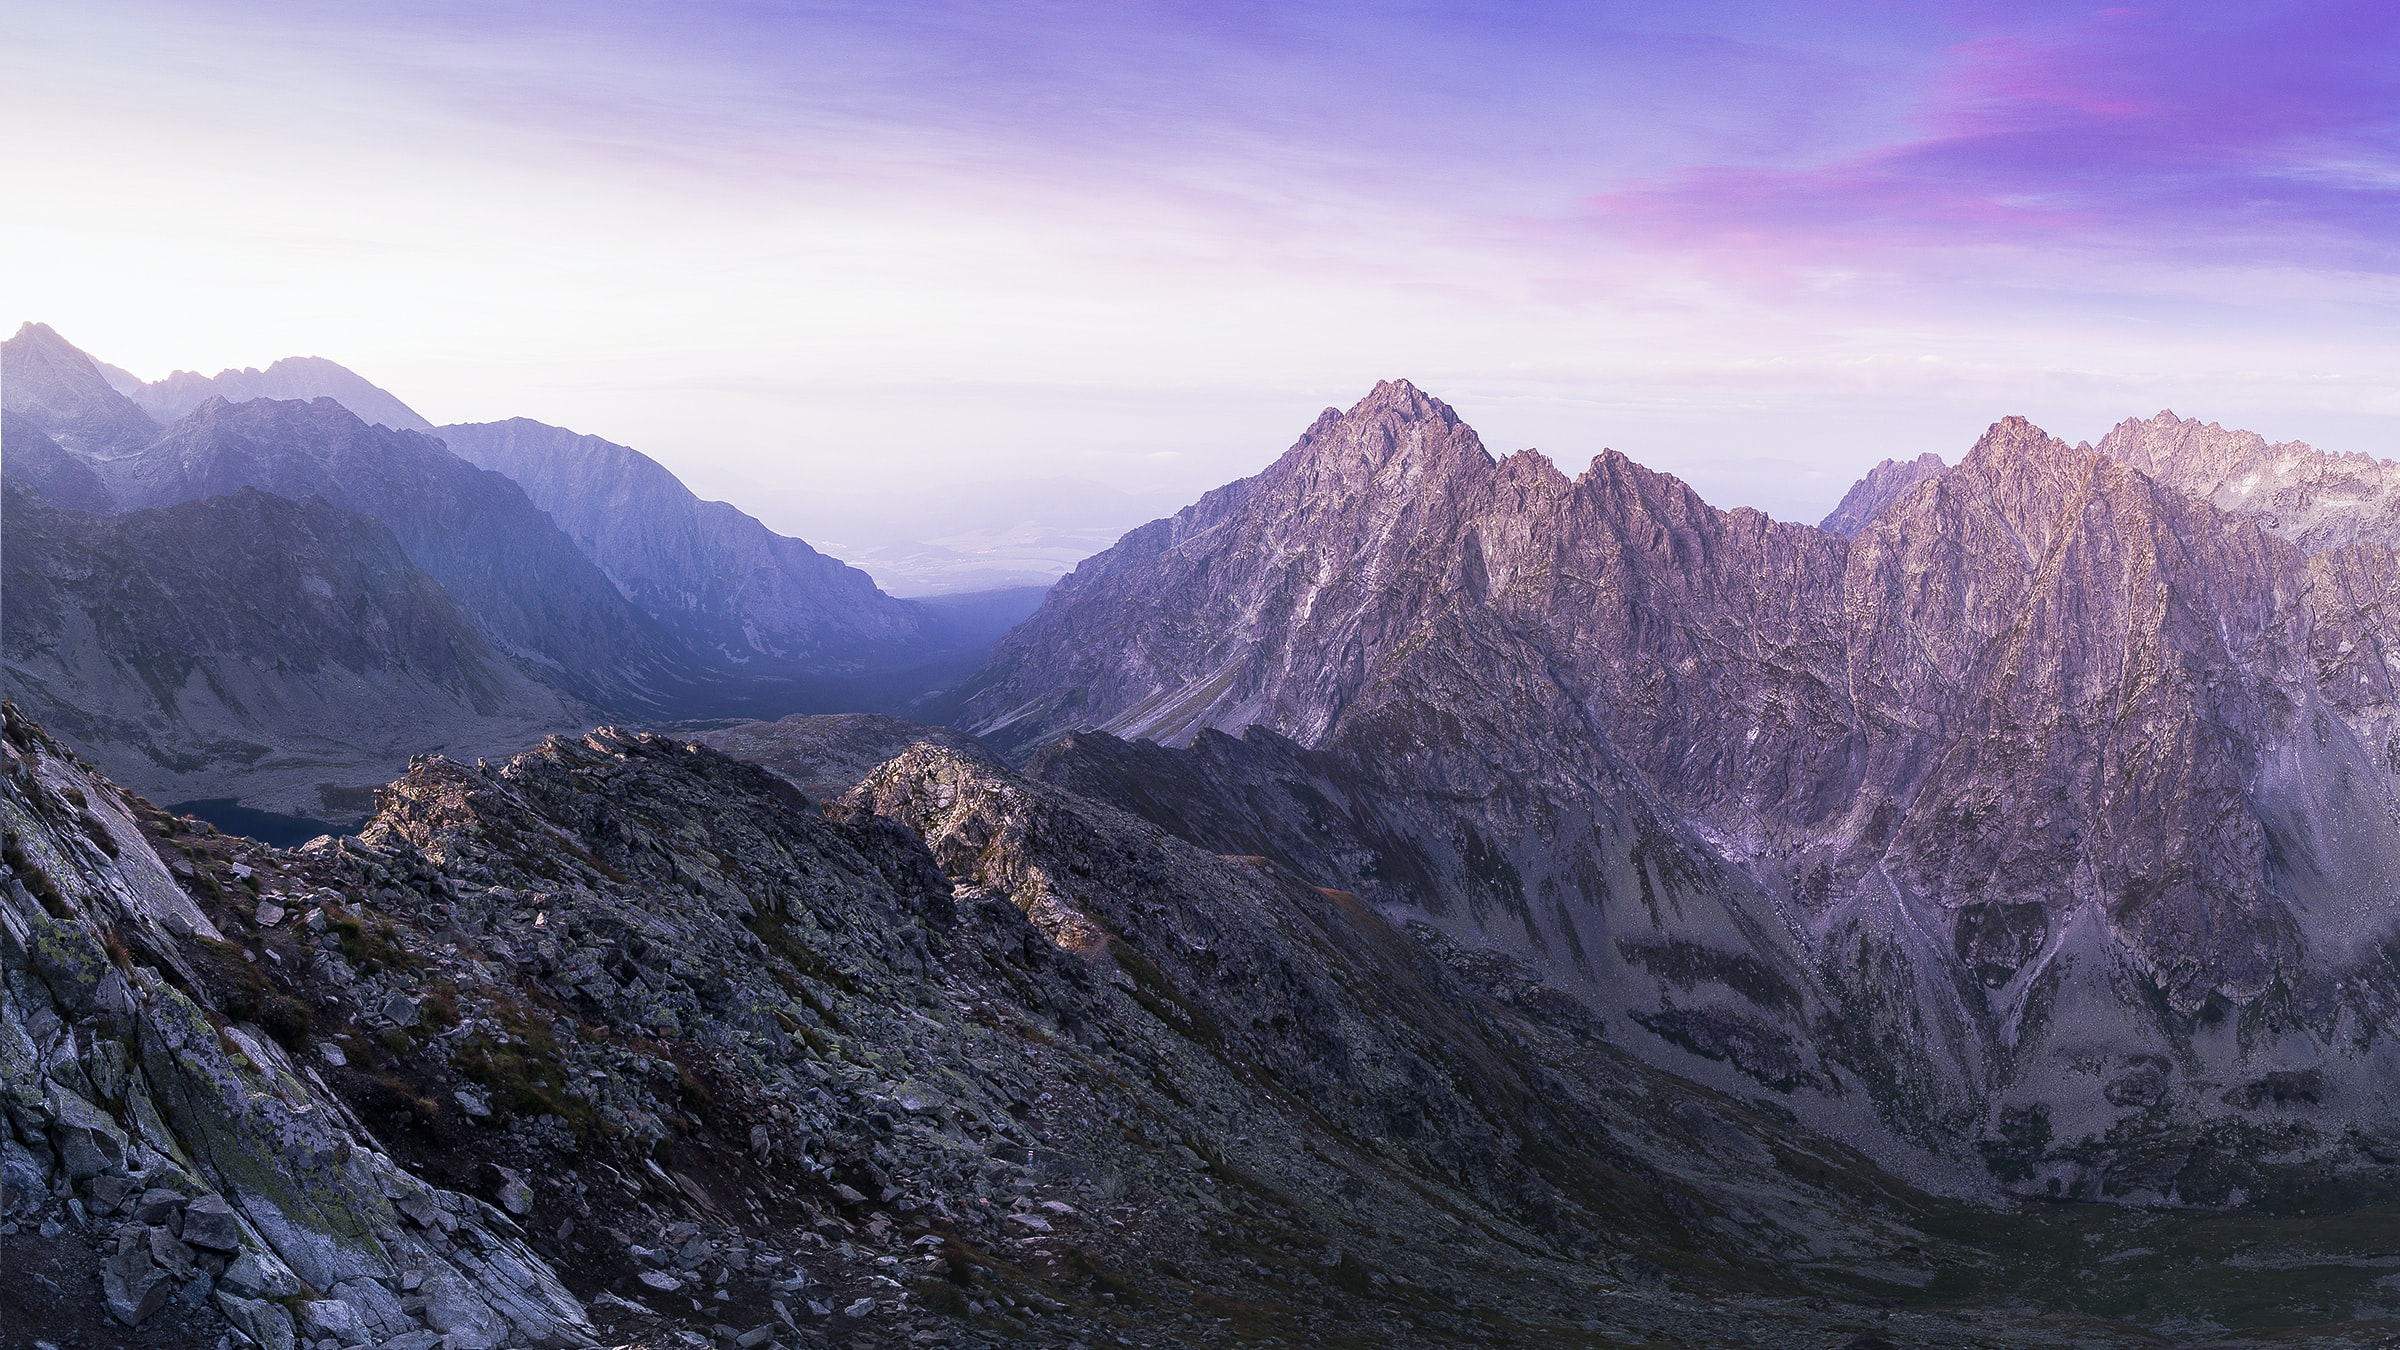 landscape photography of mountain ranges under purple and pink skies